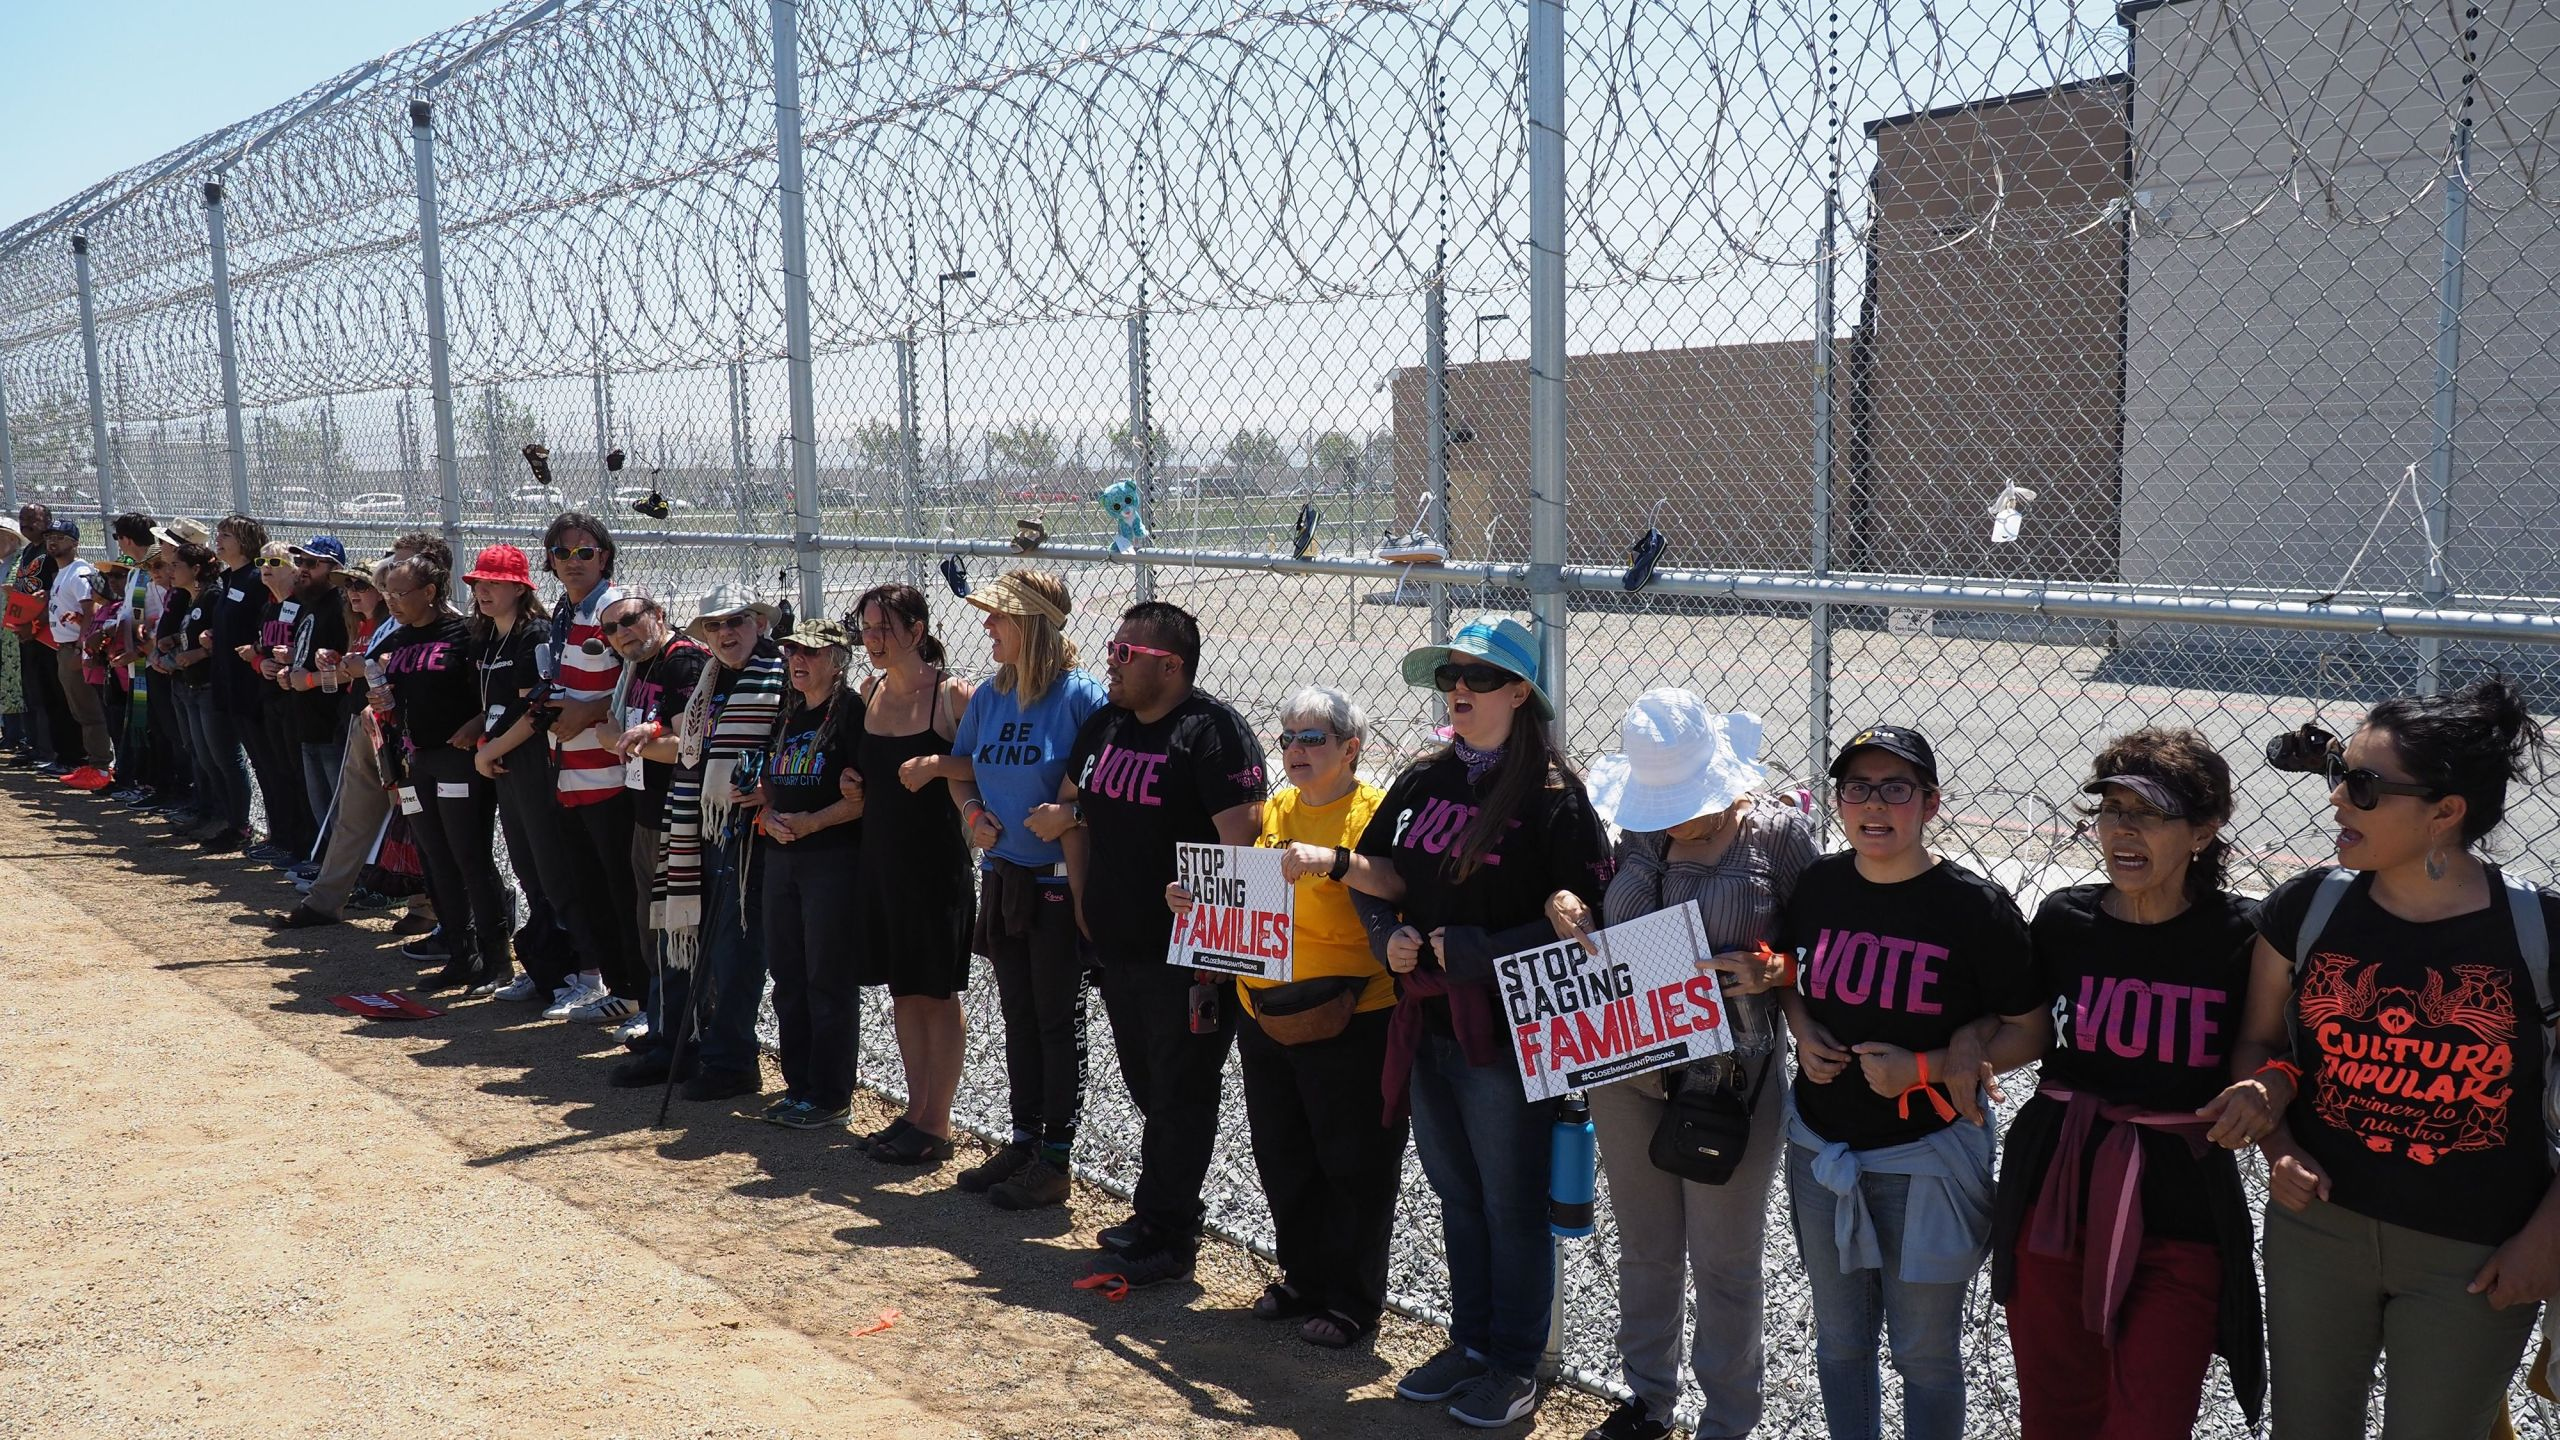 Protestors link arms after tying children's shoes and keys on the fence outside the Otay Mesa Detention Center during a demonstration against a Trump administration policy that separated migrant children from parents, in San Diego on June 23, 2018. (Credit: Robyn Beck / AFP / Getty Images)